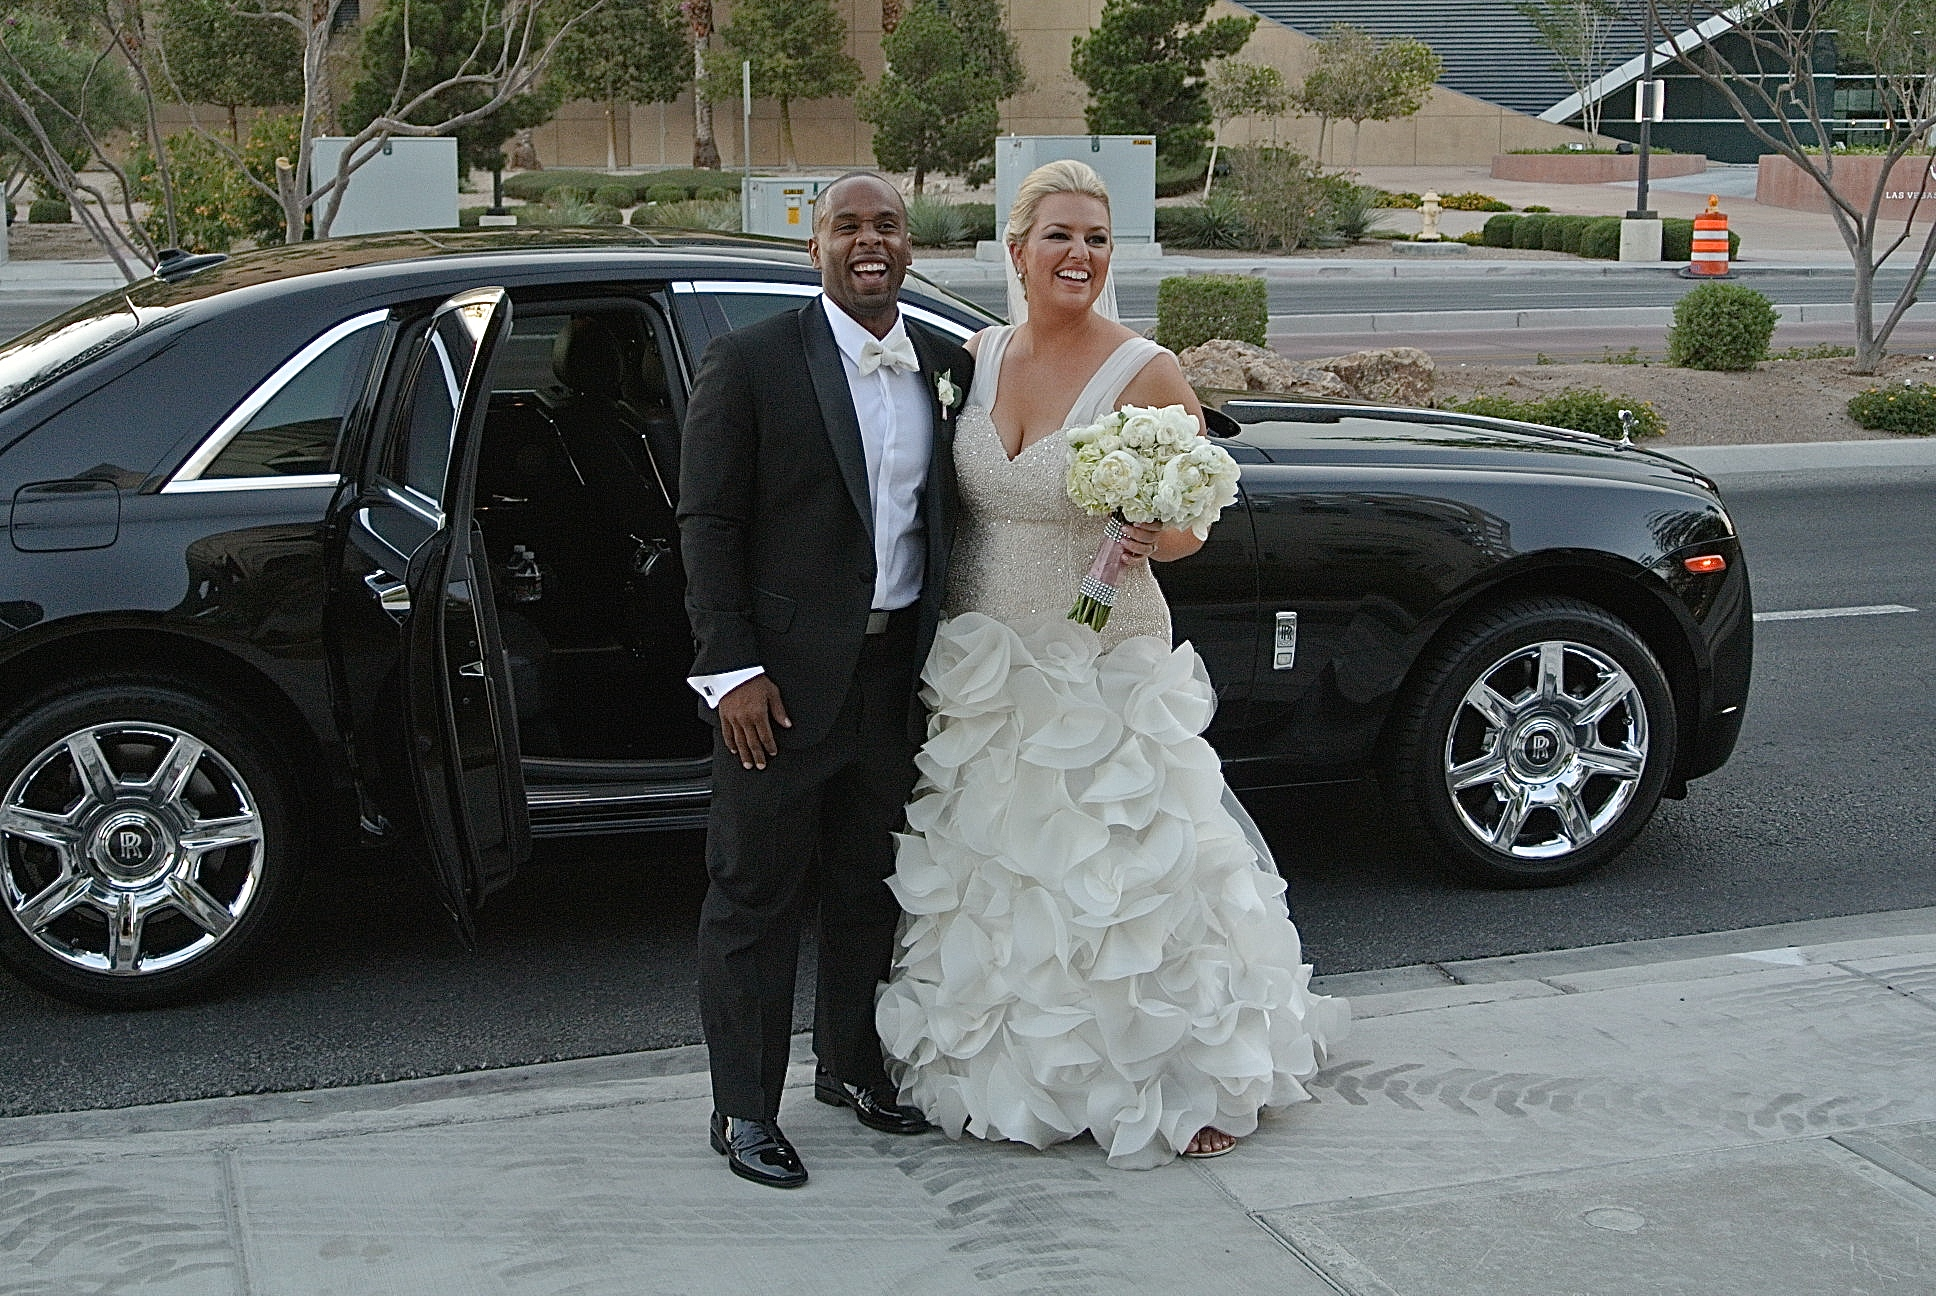 Looking for spectacular wedding transportation?  There is nothing like a timeless black Rolls Royce.  And you see those smiles?  All night long!!!    Las Vegas Wedding Planner Andrea Eppolito  |  Wedding at Keep Memory Alive Center  |  Floral and Decor by Naakiti Floral  |  Wedding Dress: Mina Olive